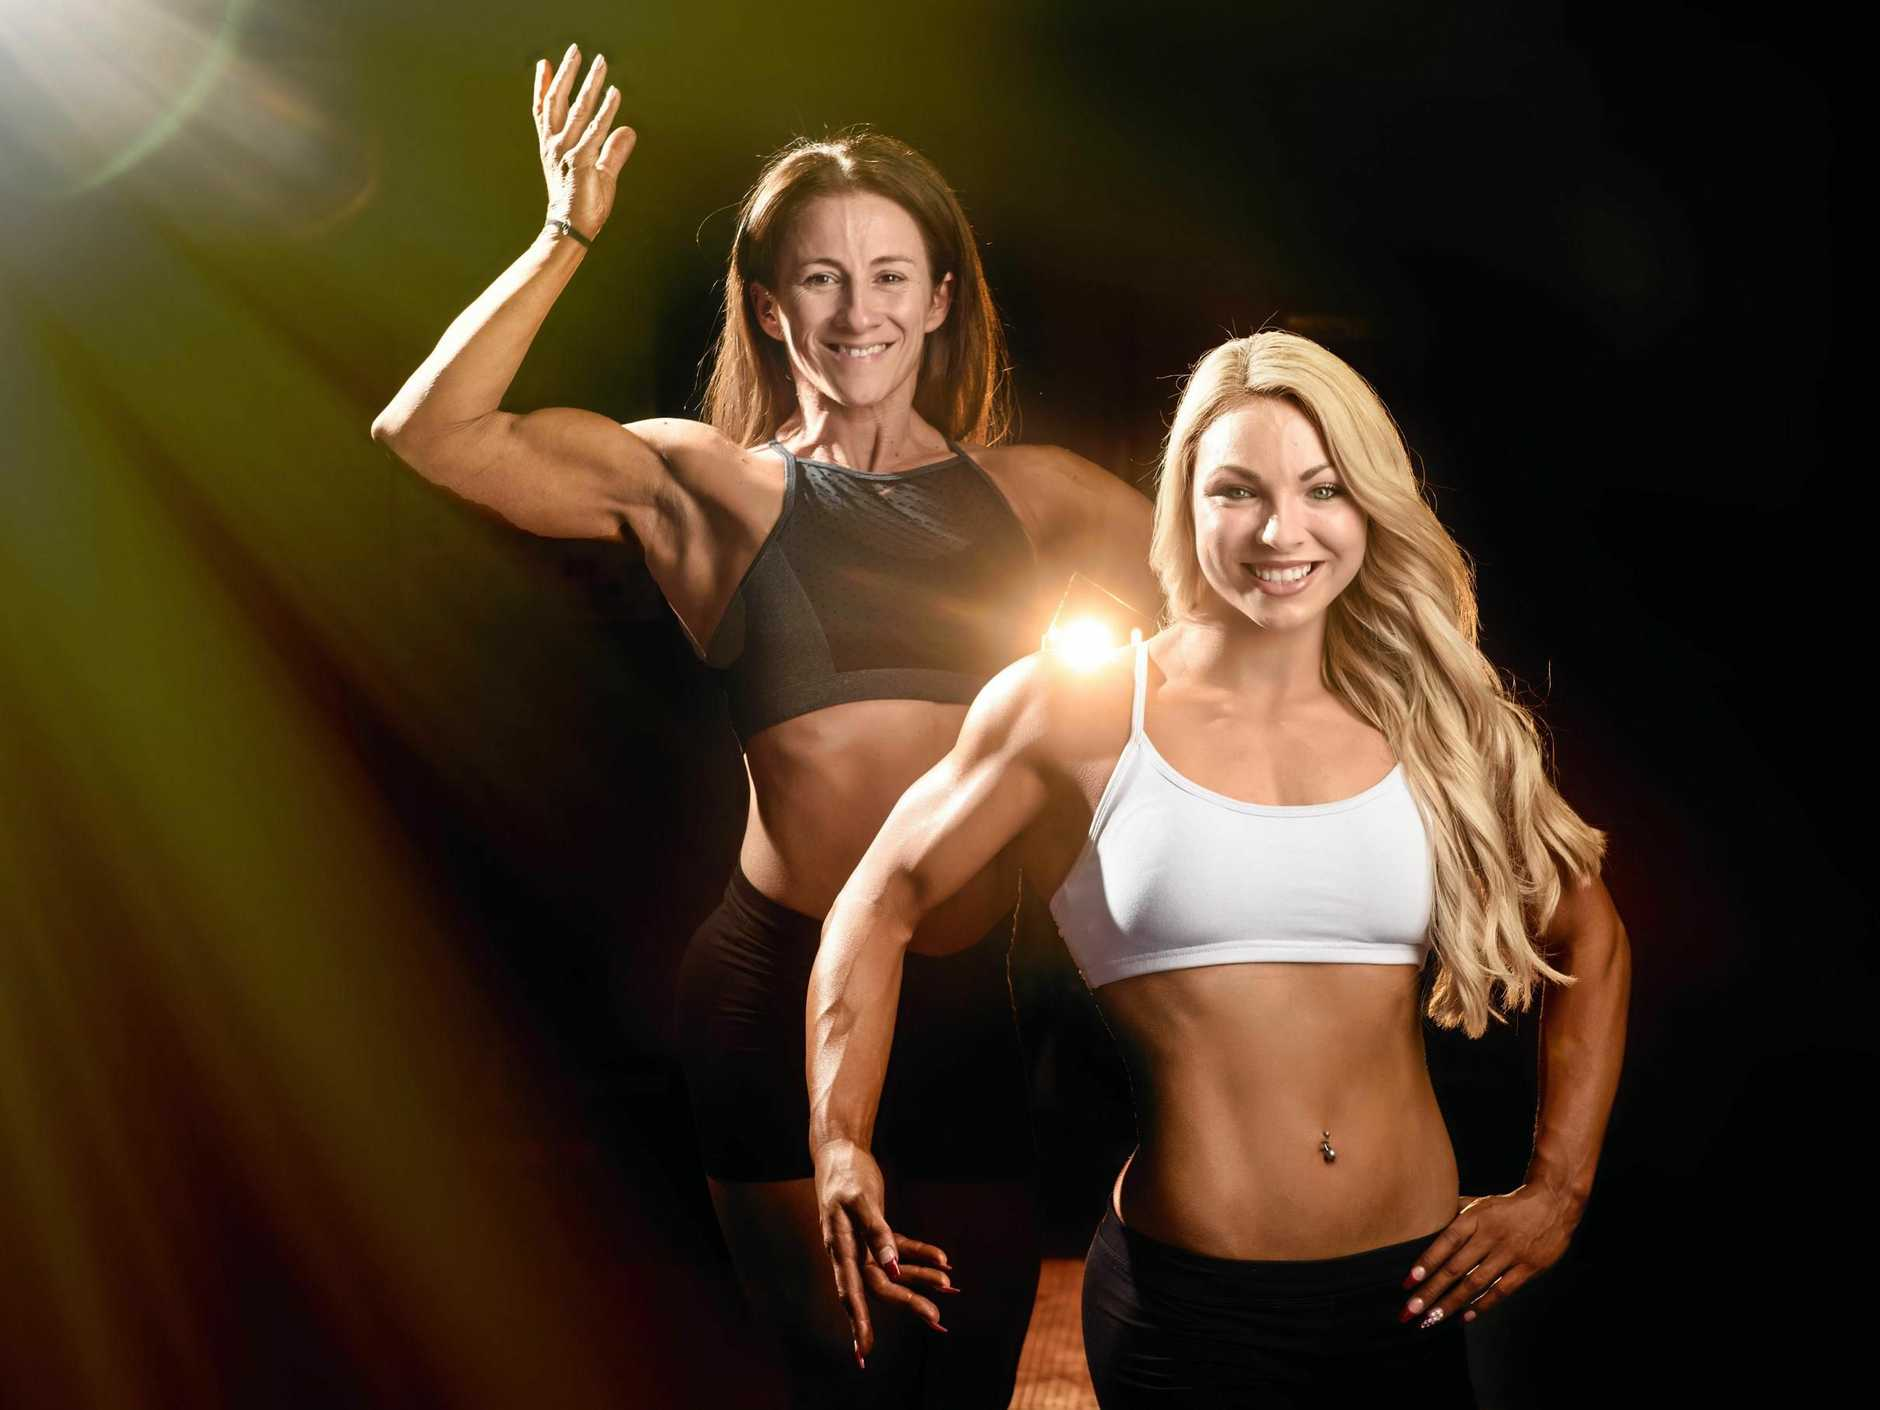 Dannielle Purnell and Bec Pateman show off their success from the Muscle Mania contest.